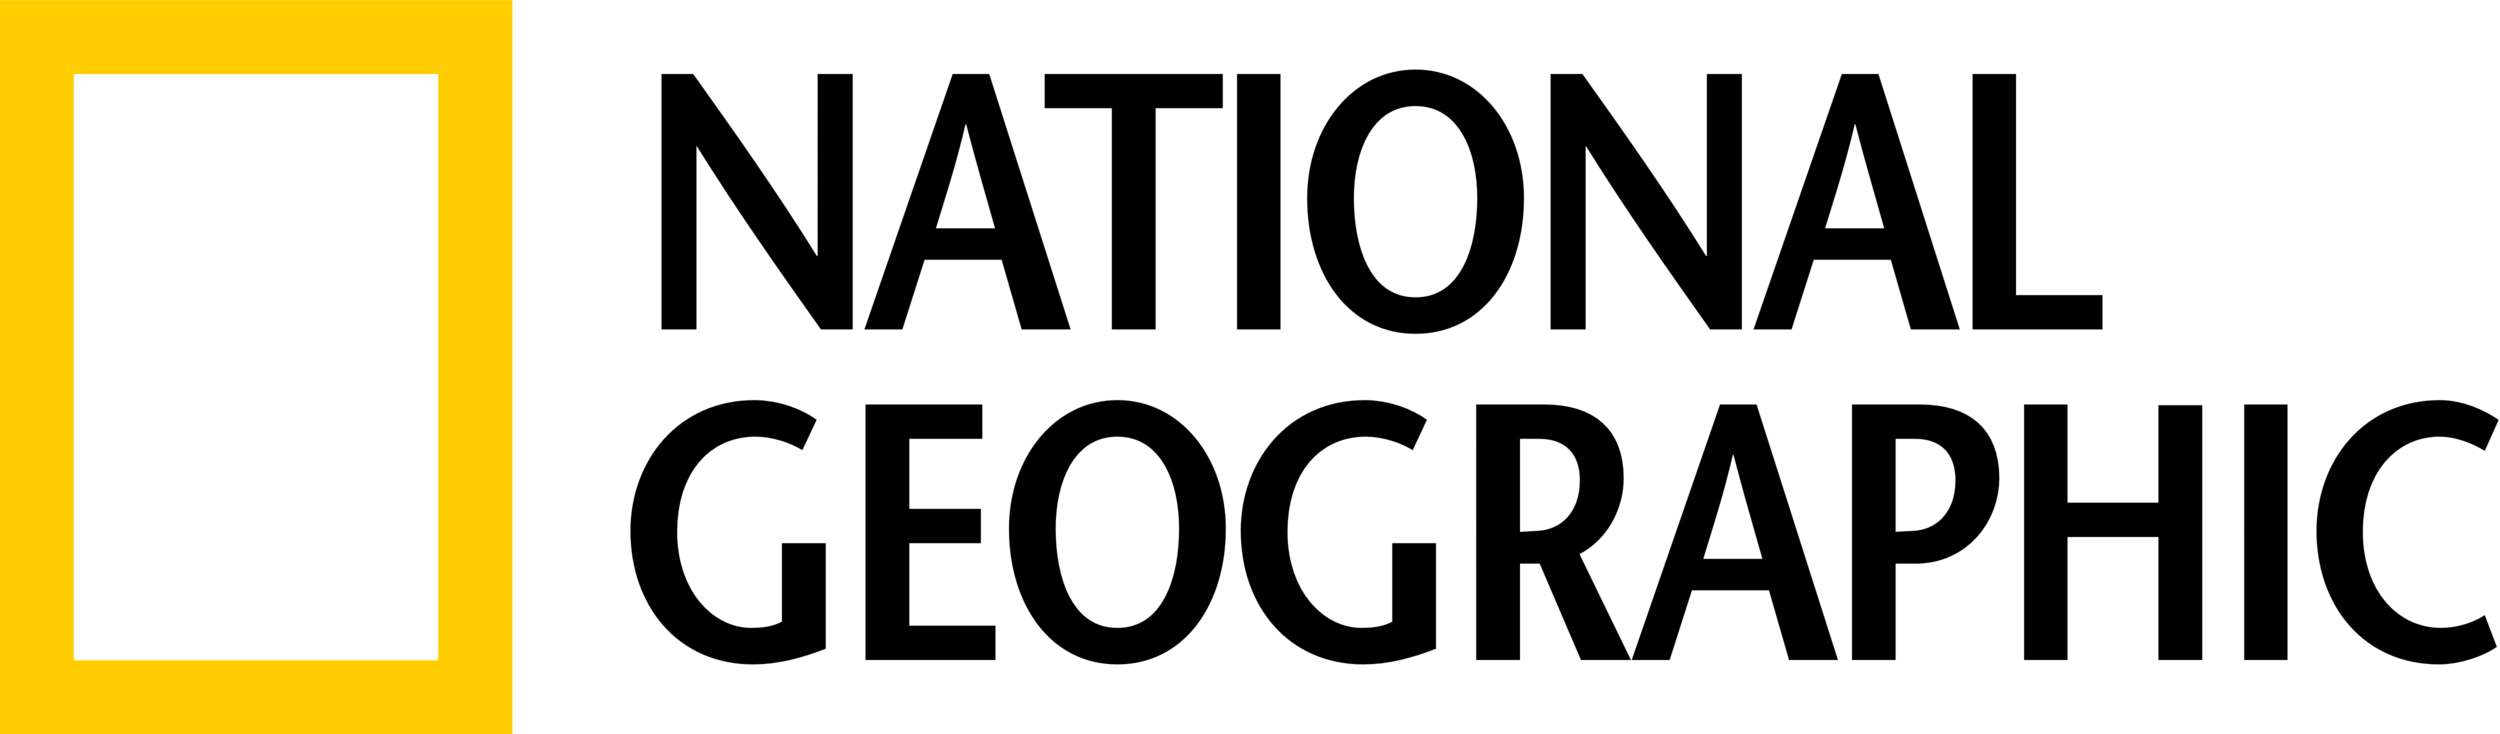 National_Geographic_logo (1).png